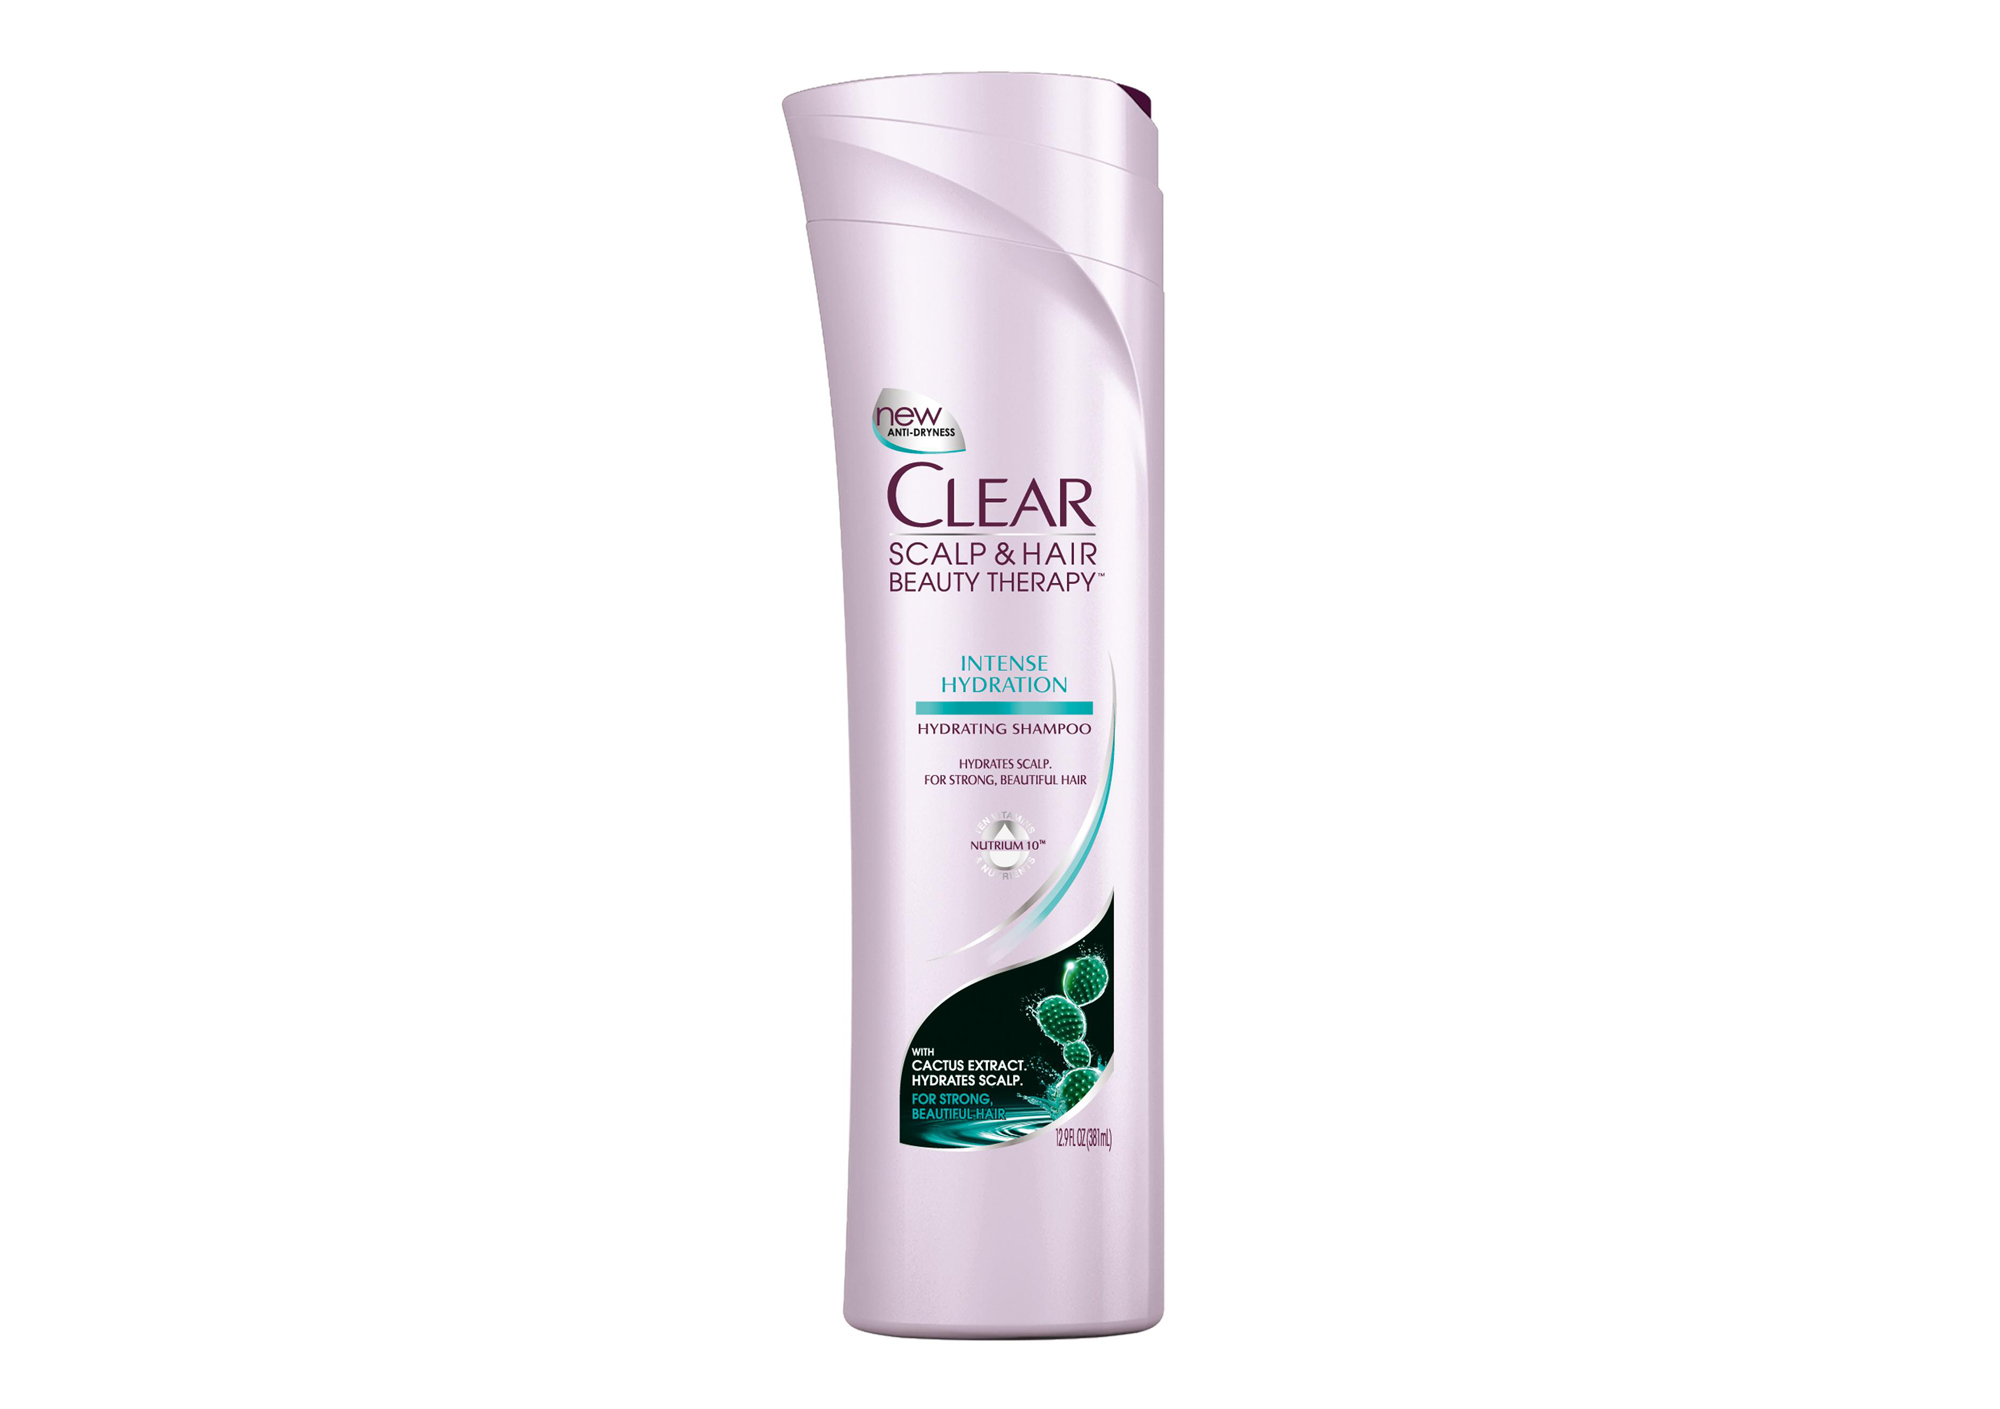 Clear Scalp & Hair Intense Hydration Nourishing Shampoo